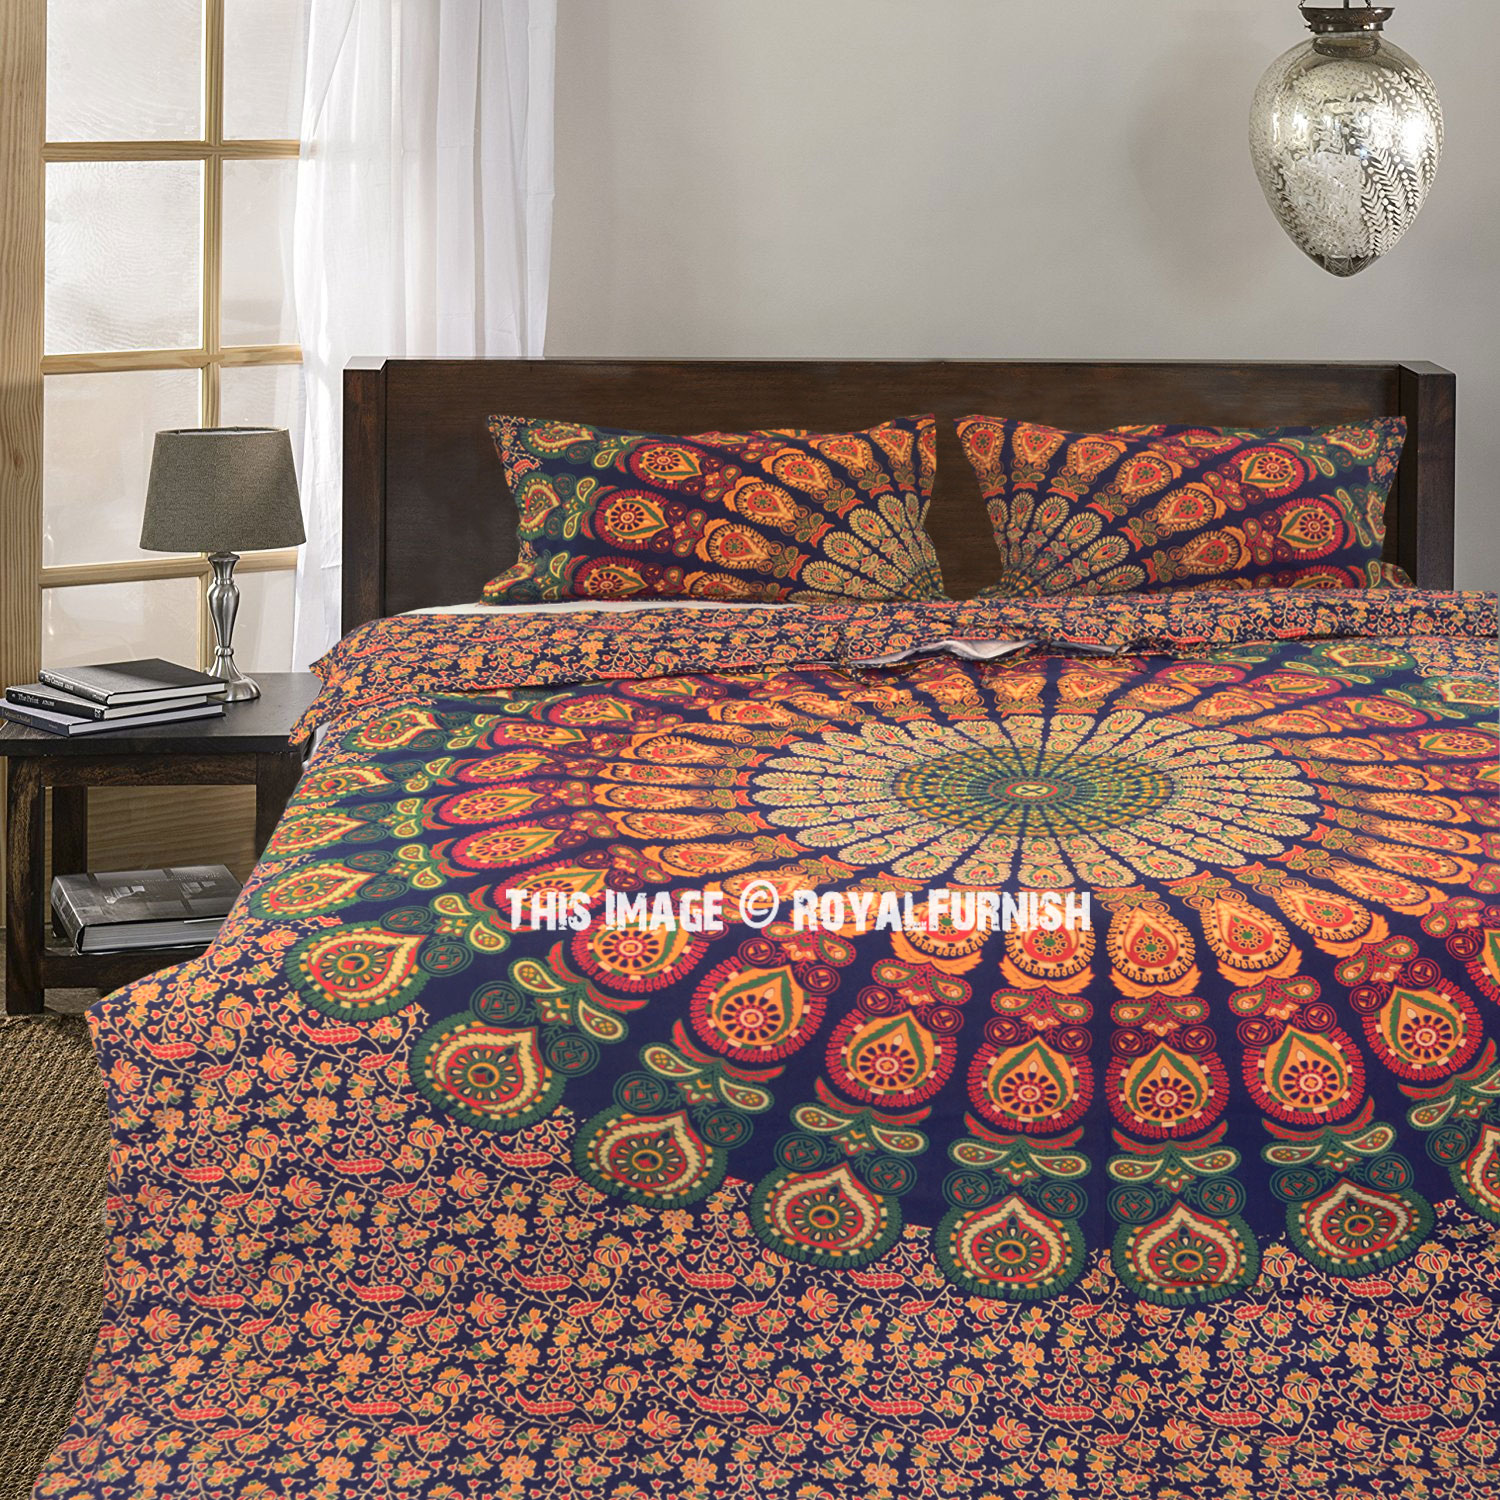 Multi Plum And Bow Devi Mandala Duvet Covers With Set Of 2